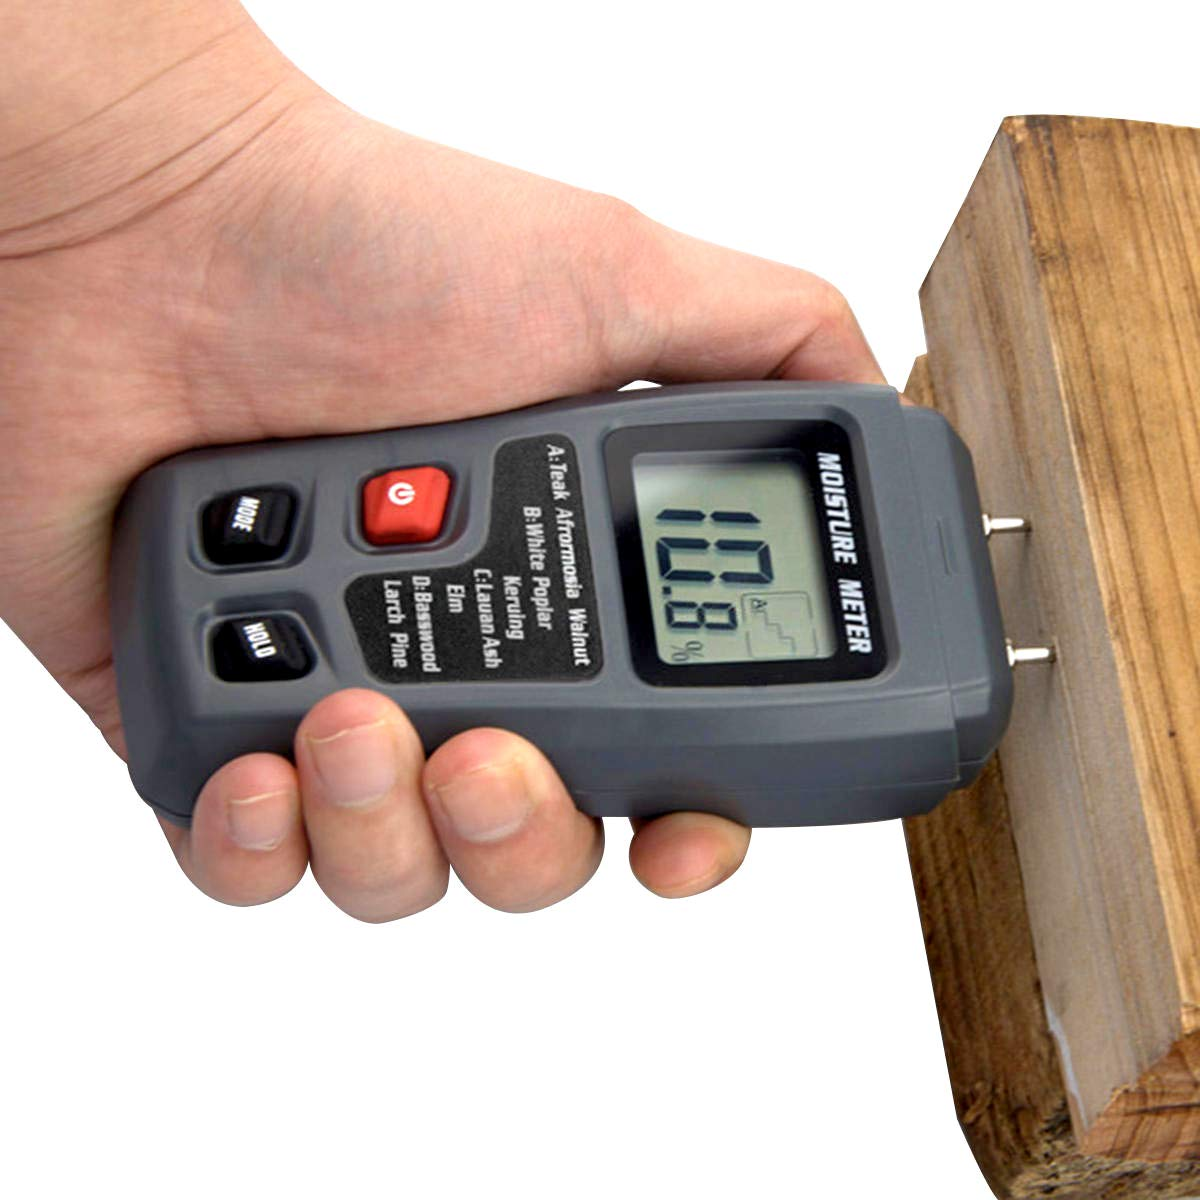 Goodfans Digital Pro Moisture Meter with LCD Hydrometer for Wood Test Moisture in Firewood, Furniture, Floor, Trees (Battery Included) 0%-99.9% by Goodfans